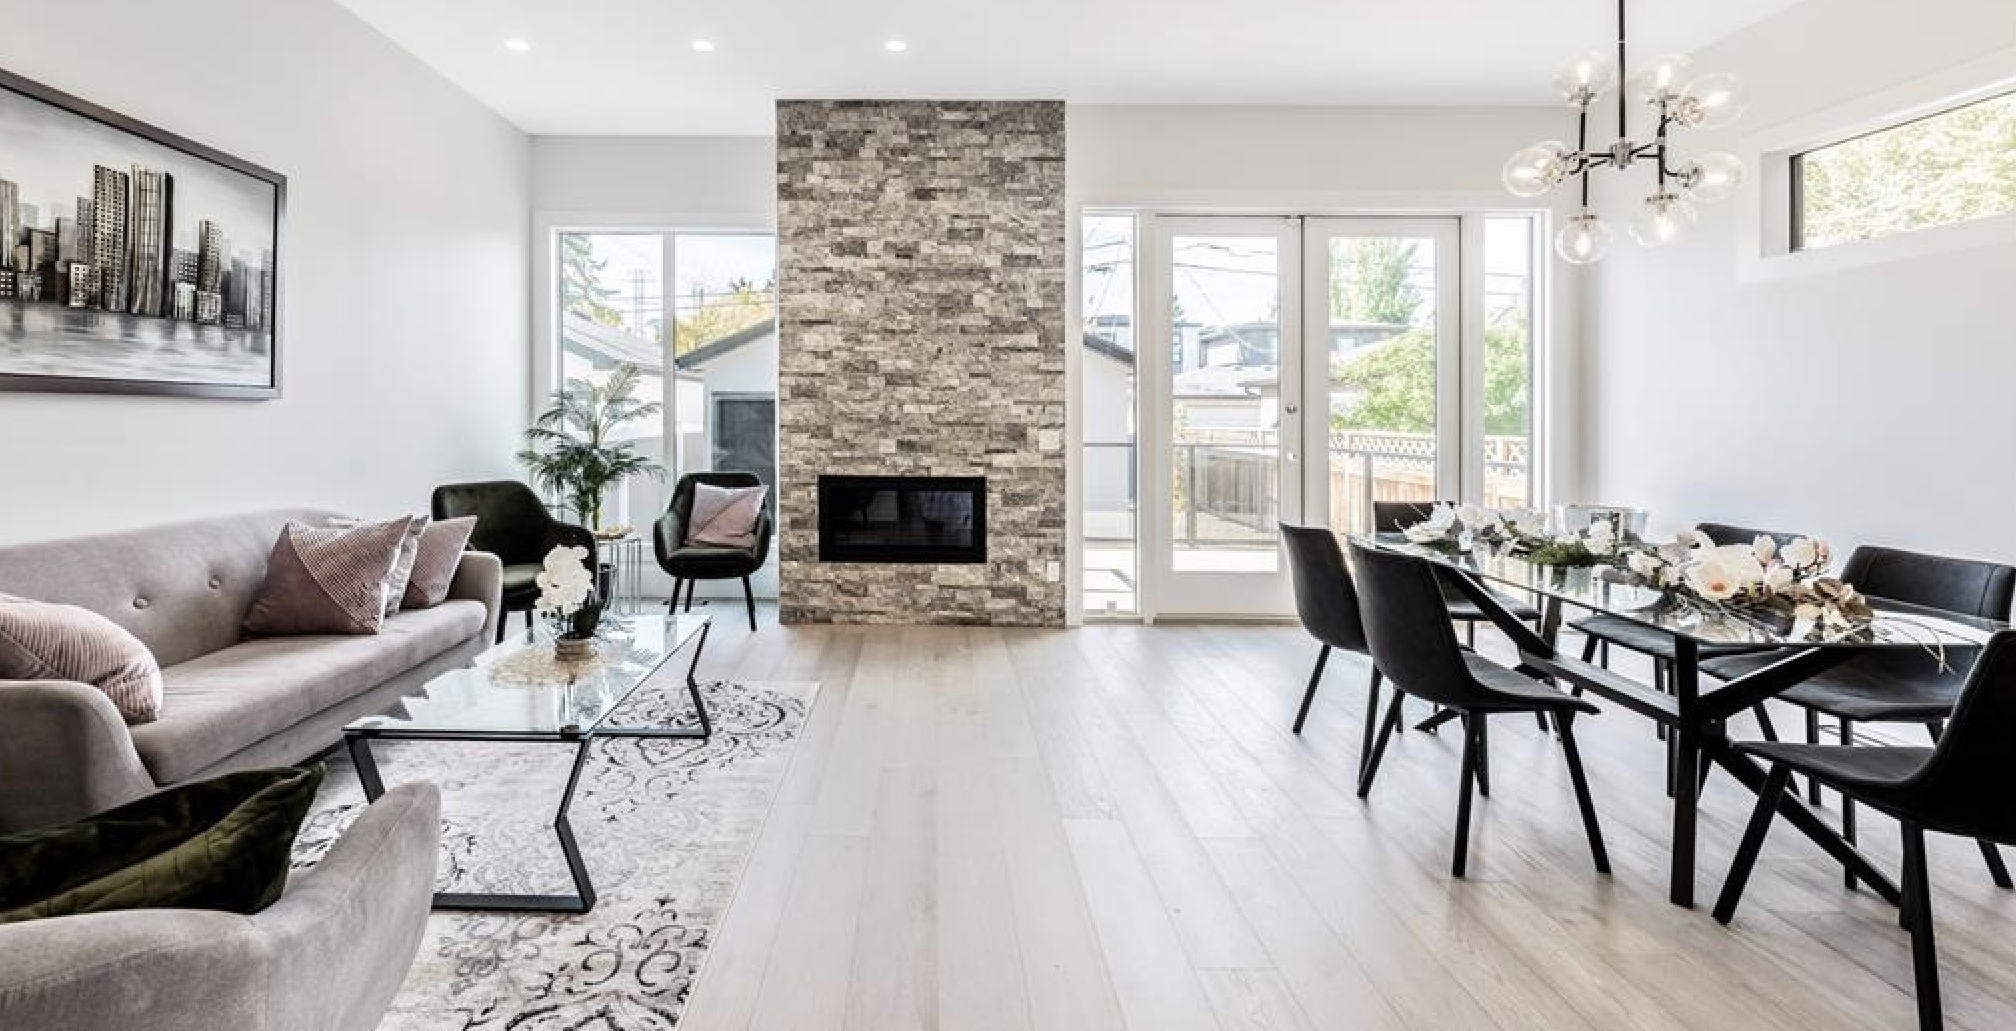 These are some of the most expensive real estate listings in Calgary